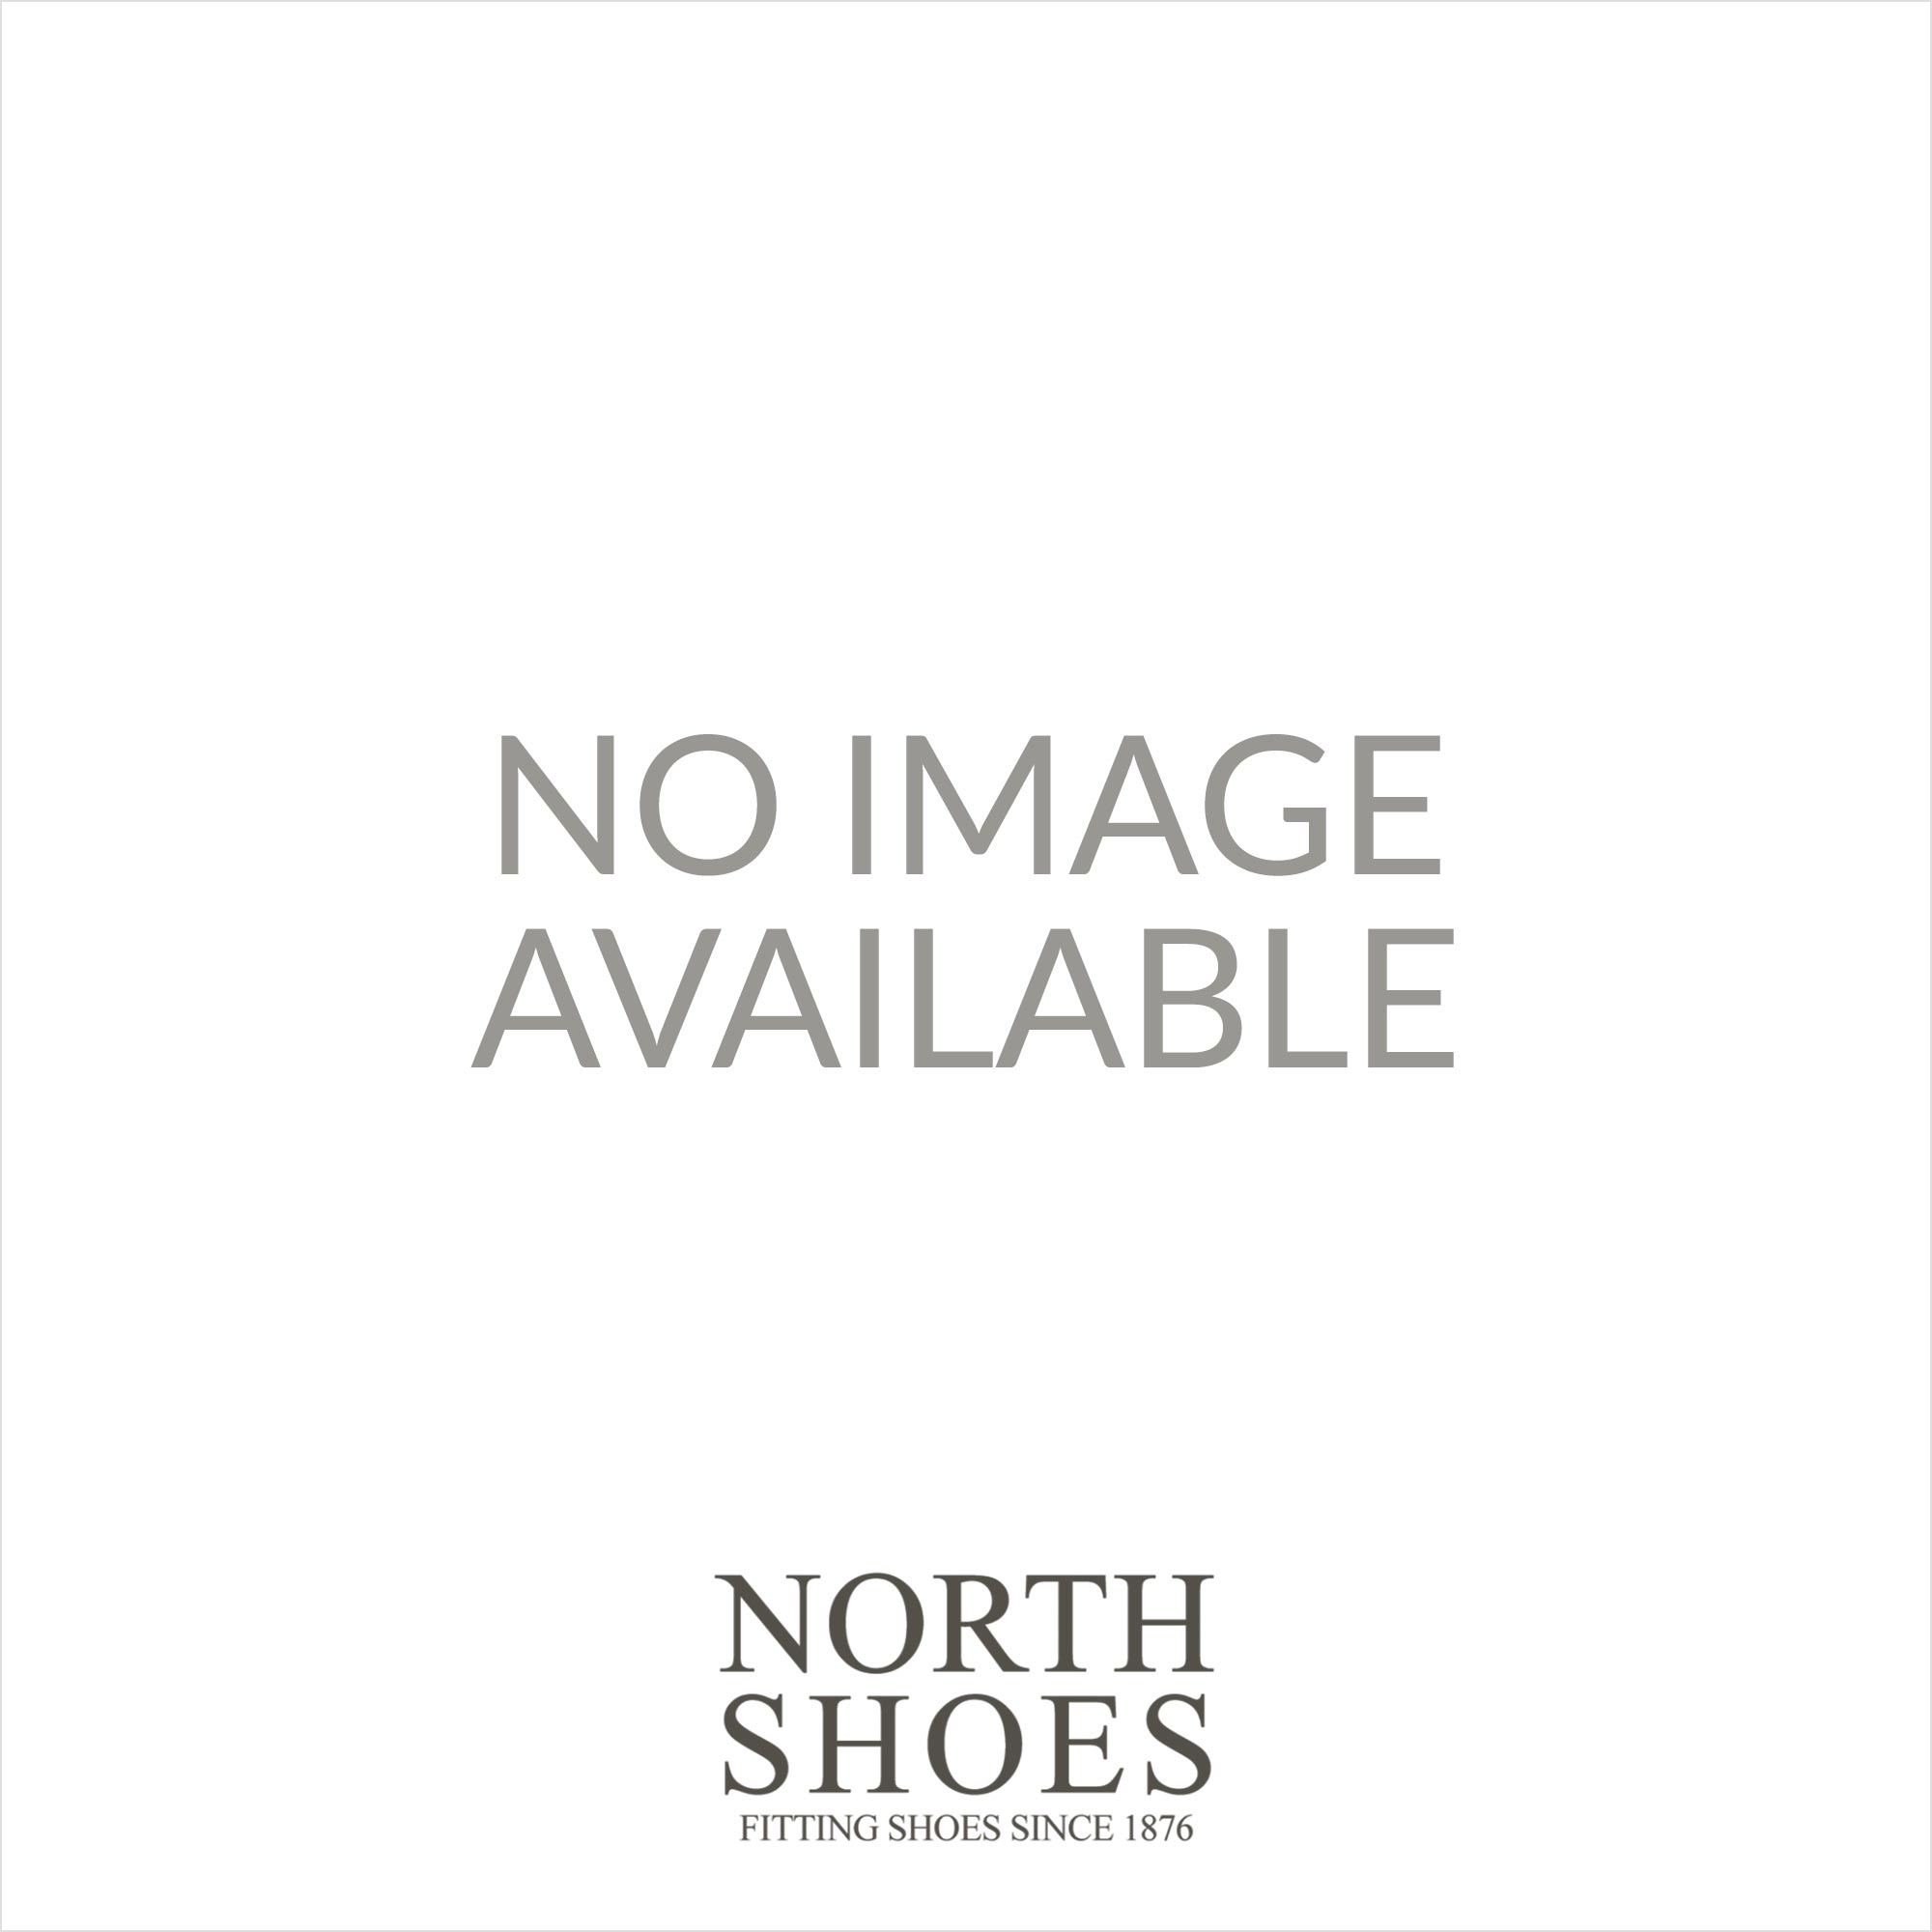 f3f92a6cc57 ... Clarks Darcy Charm Coral Patent Leather Girls Strappy Summer Sandal ...